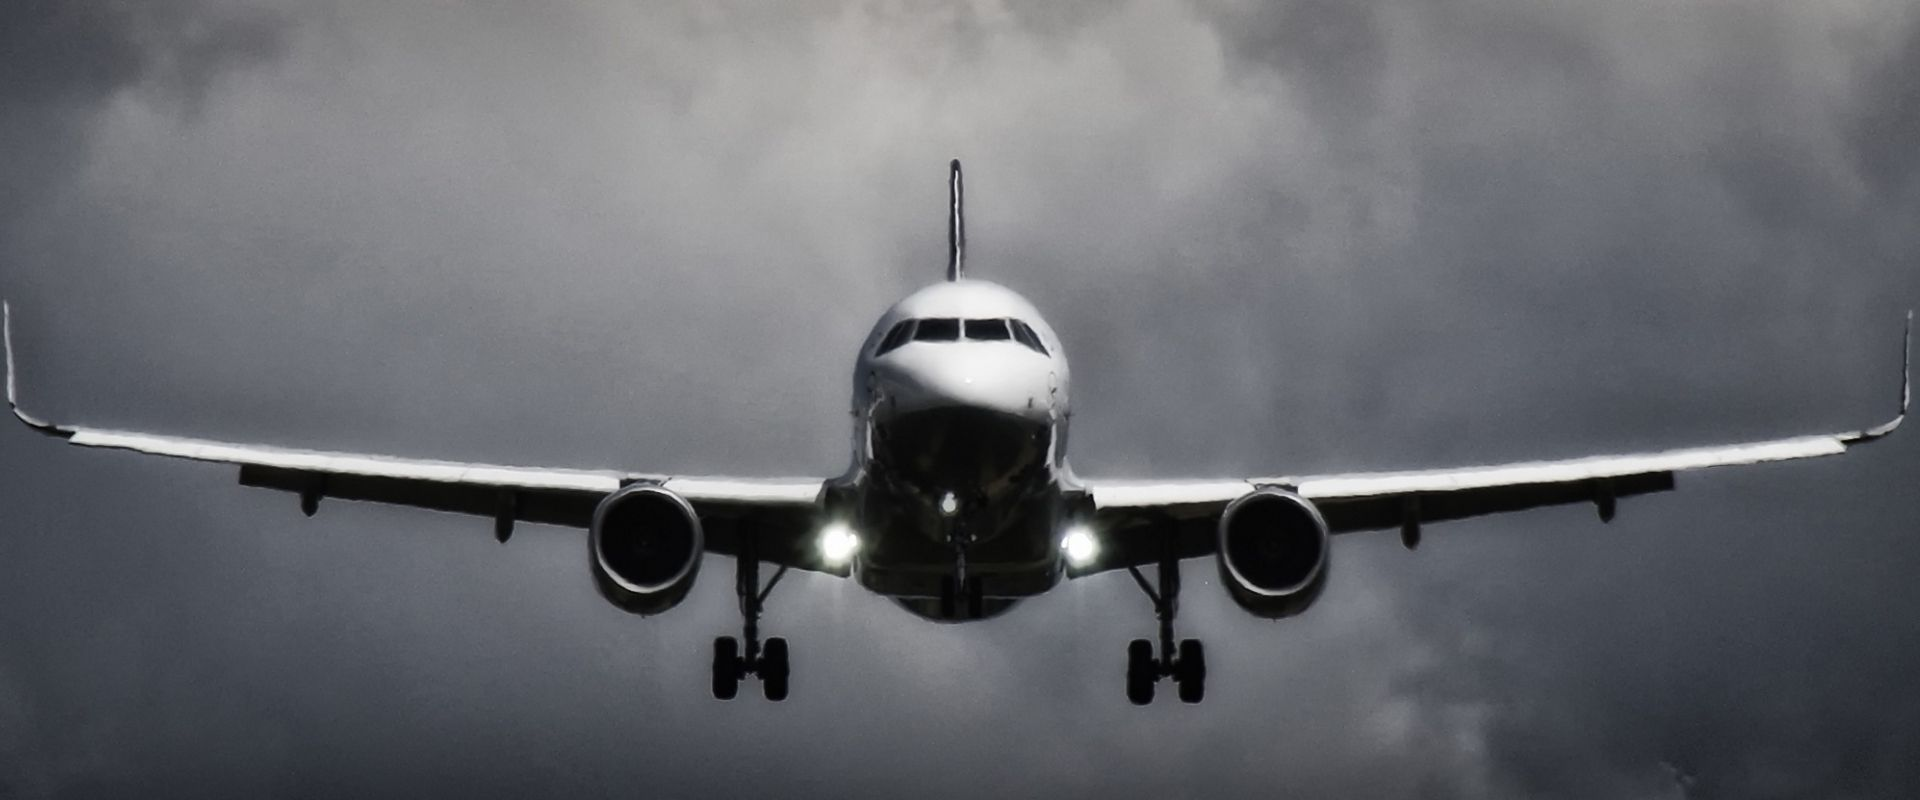 List of Valuable Safety Tips Before Flights to India